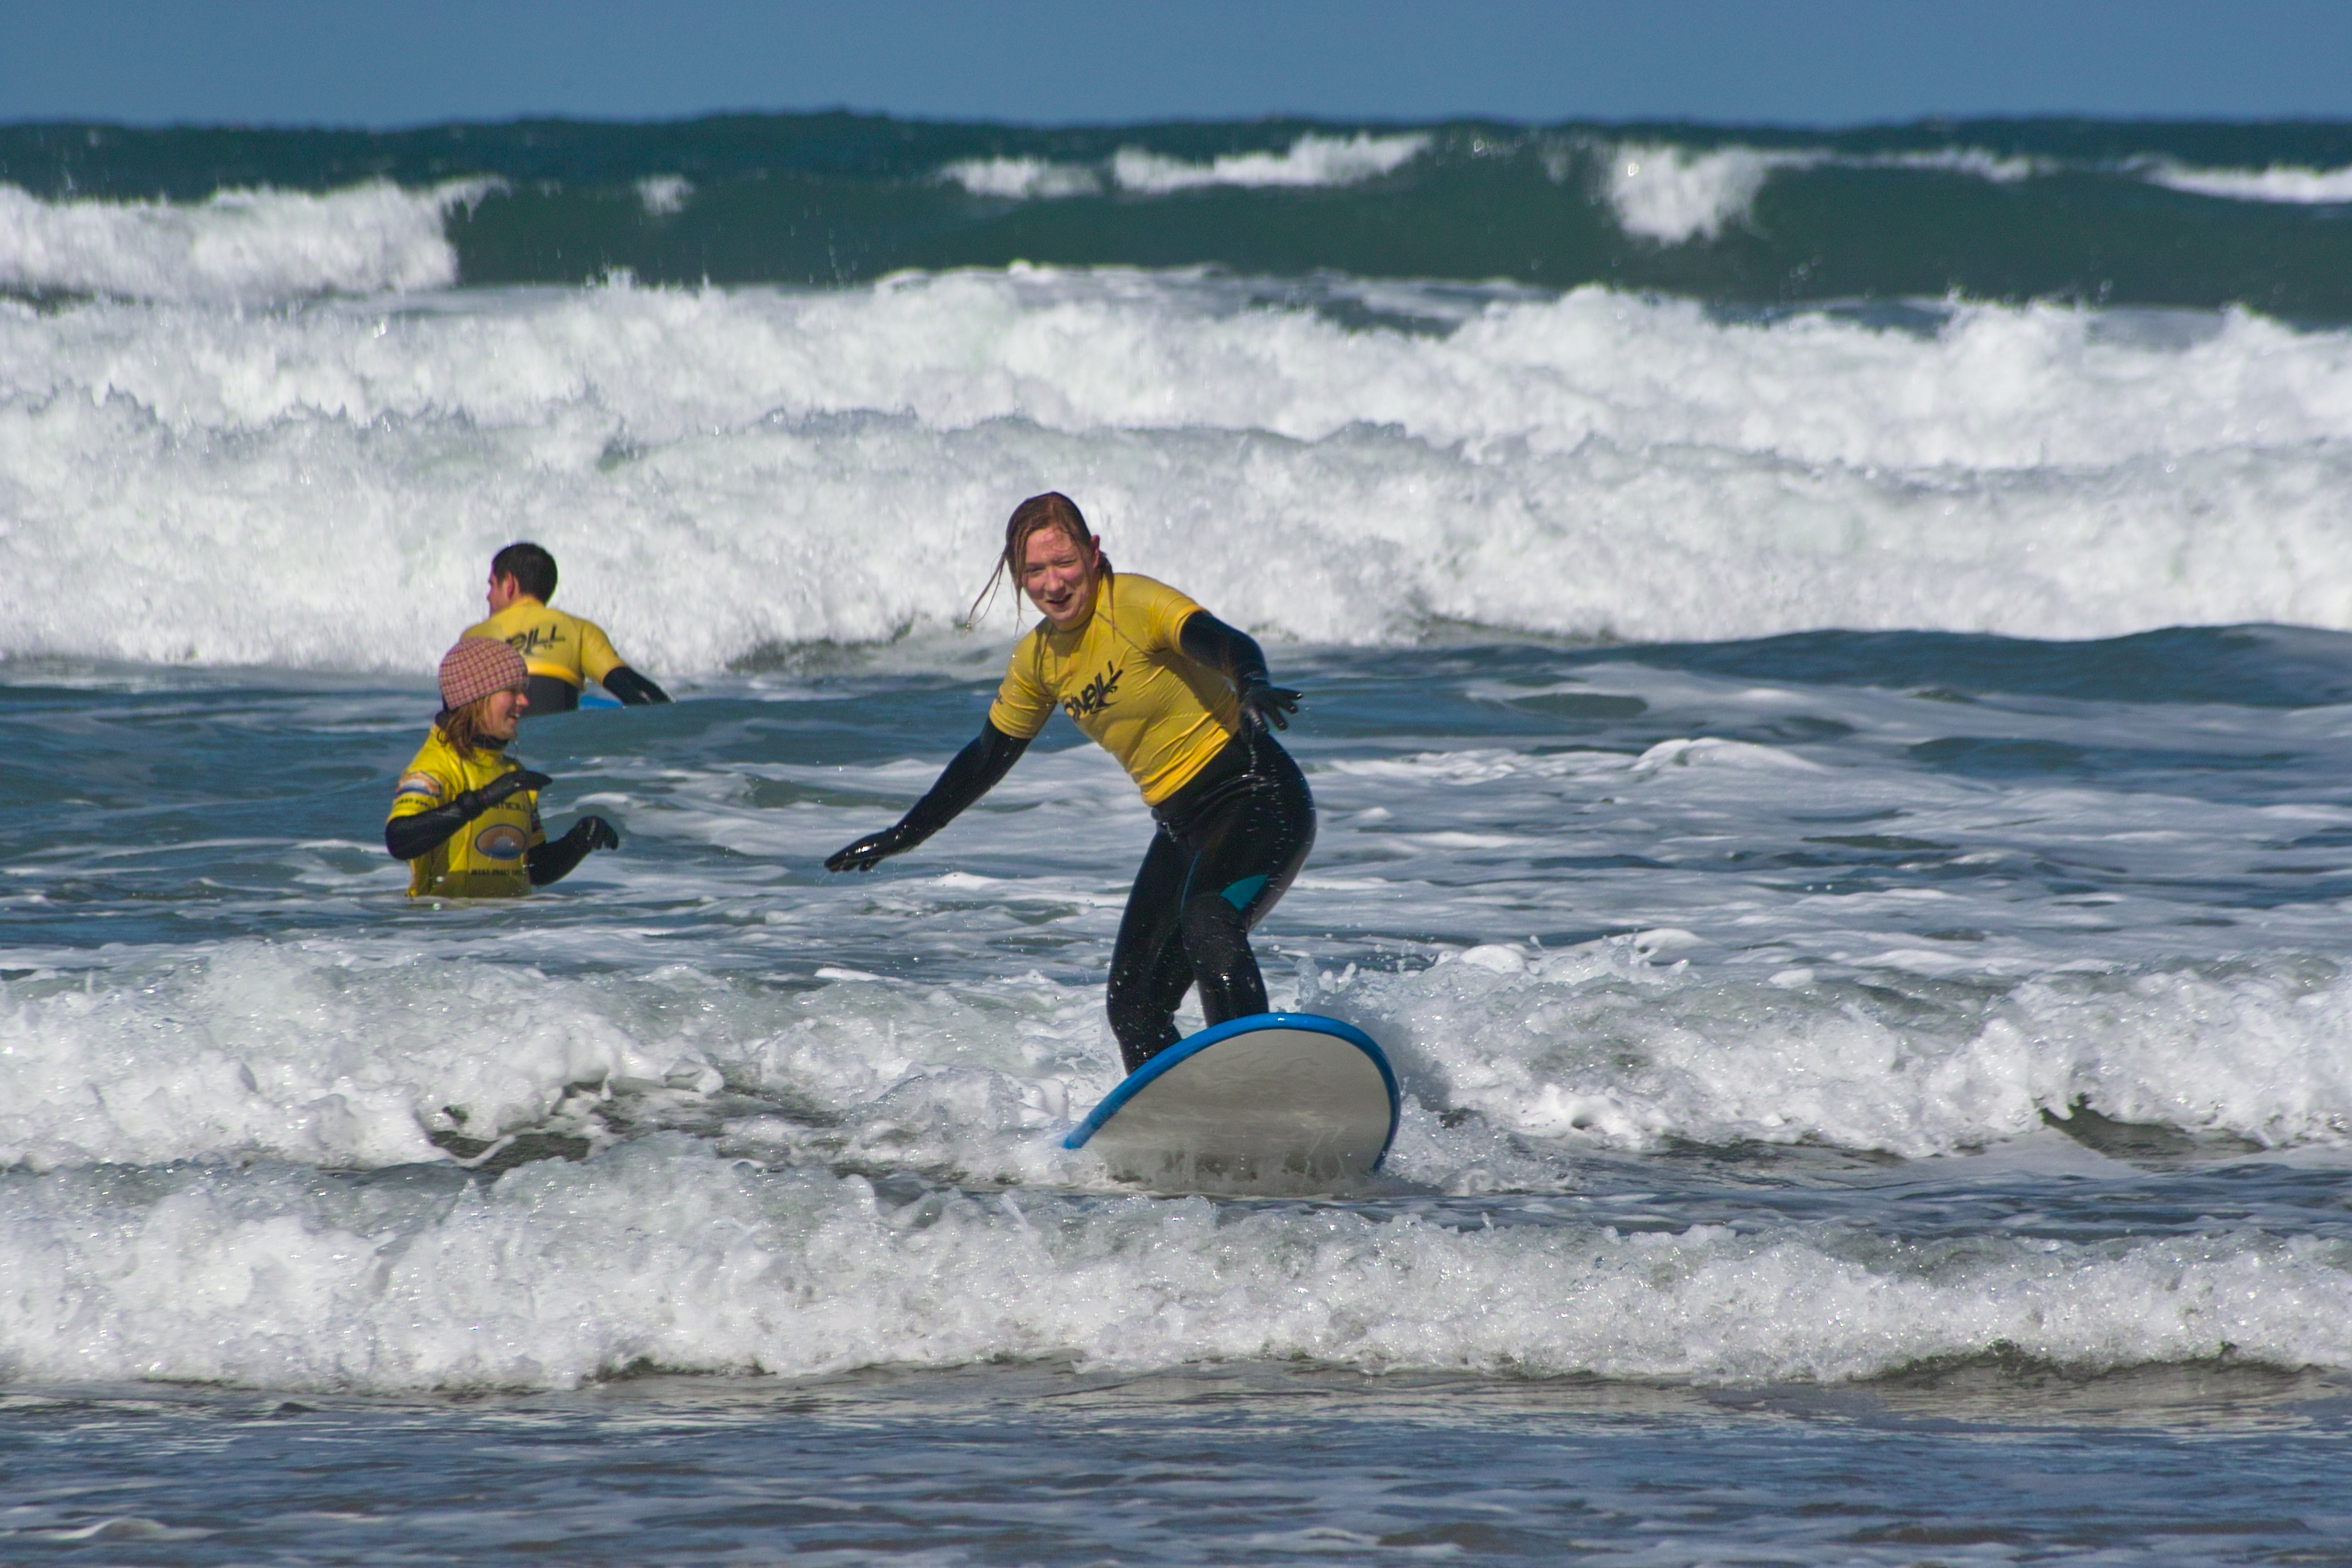 Surfing – Soooooo Much Fun!